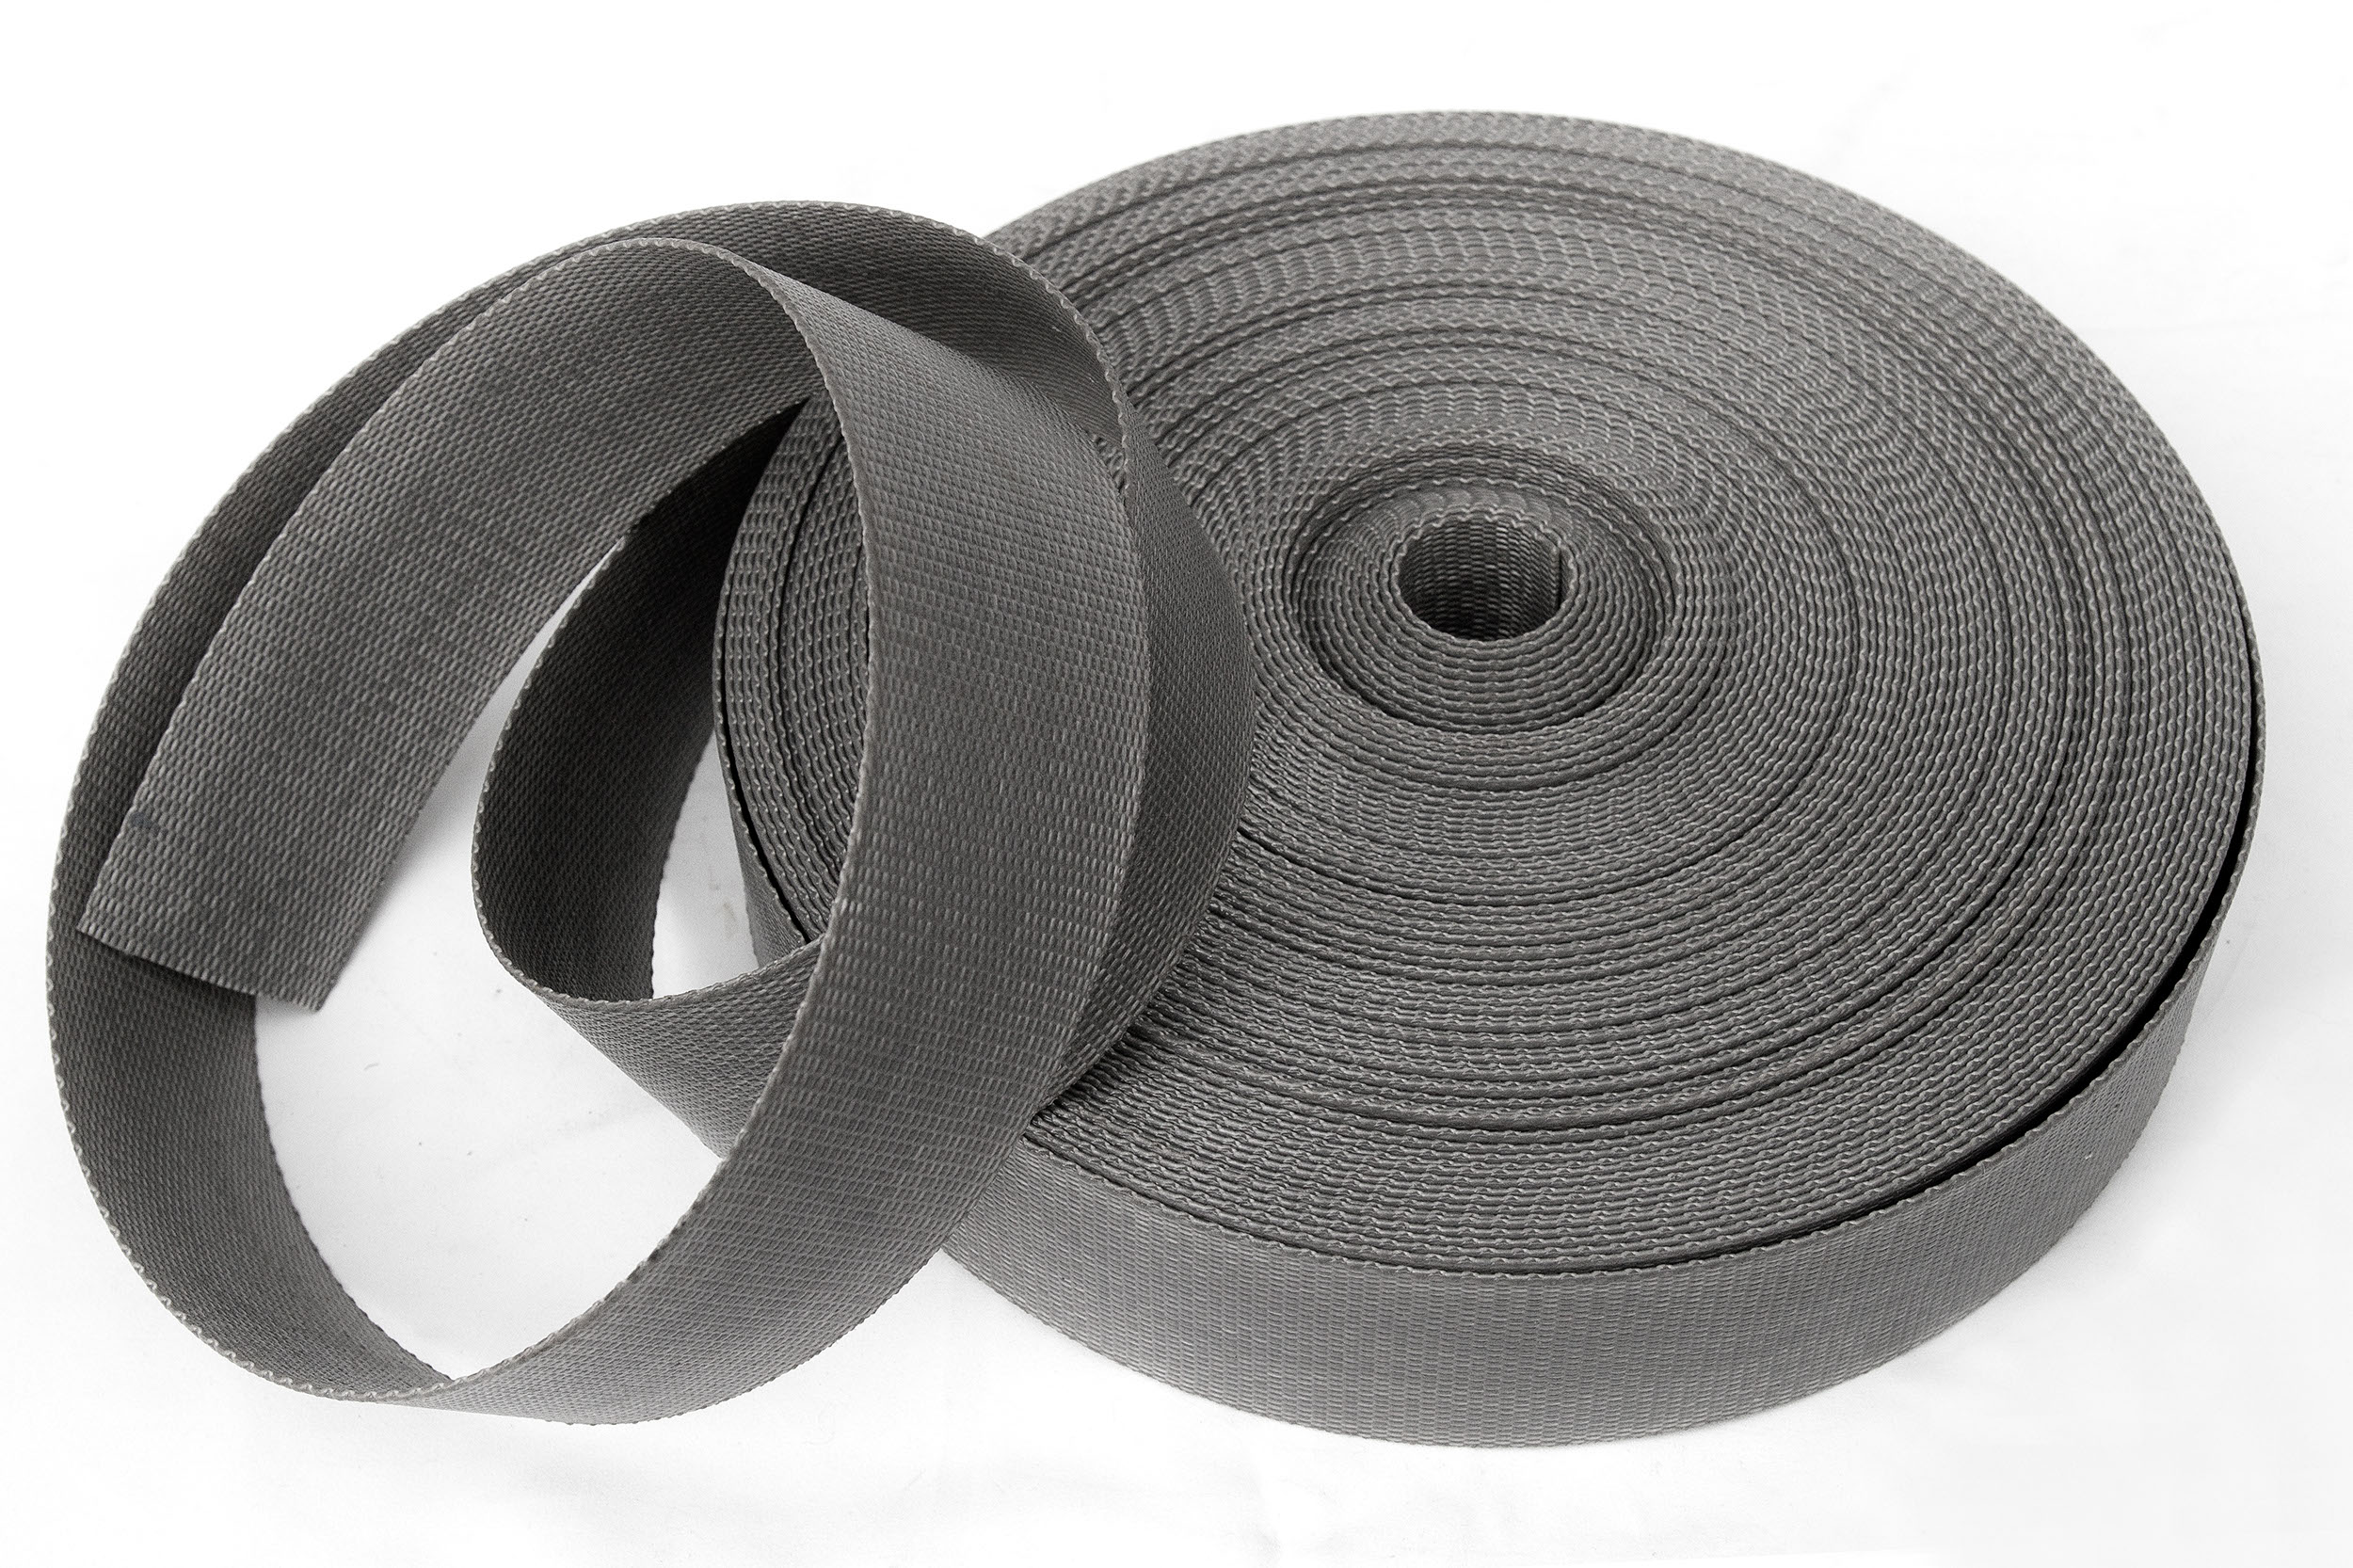 Weldable-Tape-Grey-2.jpg